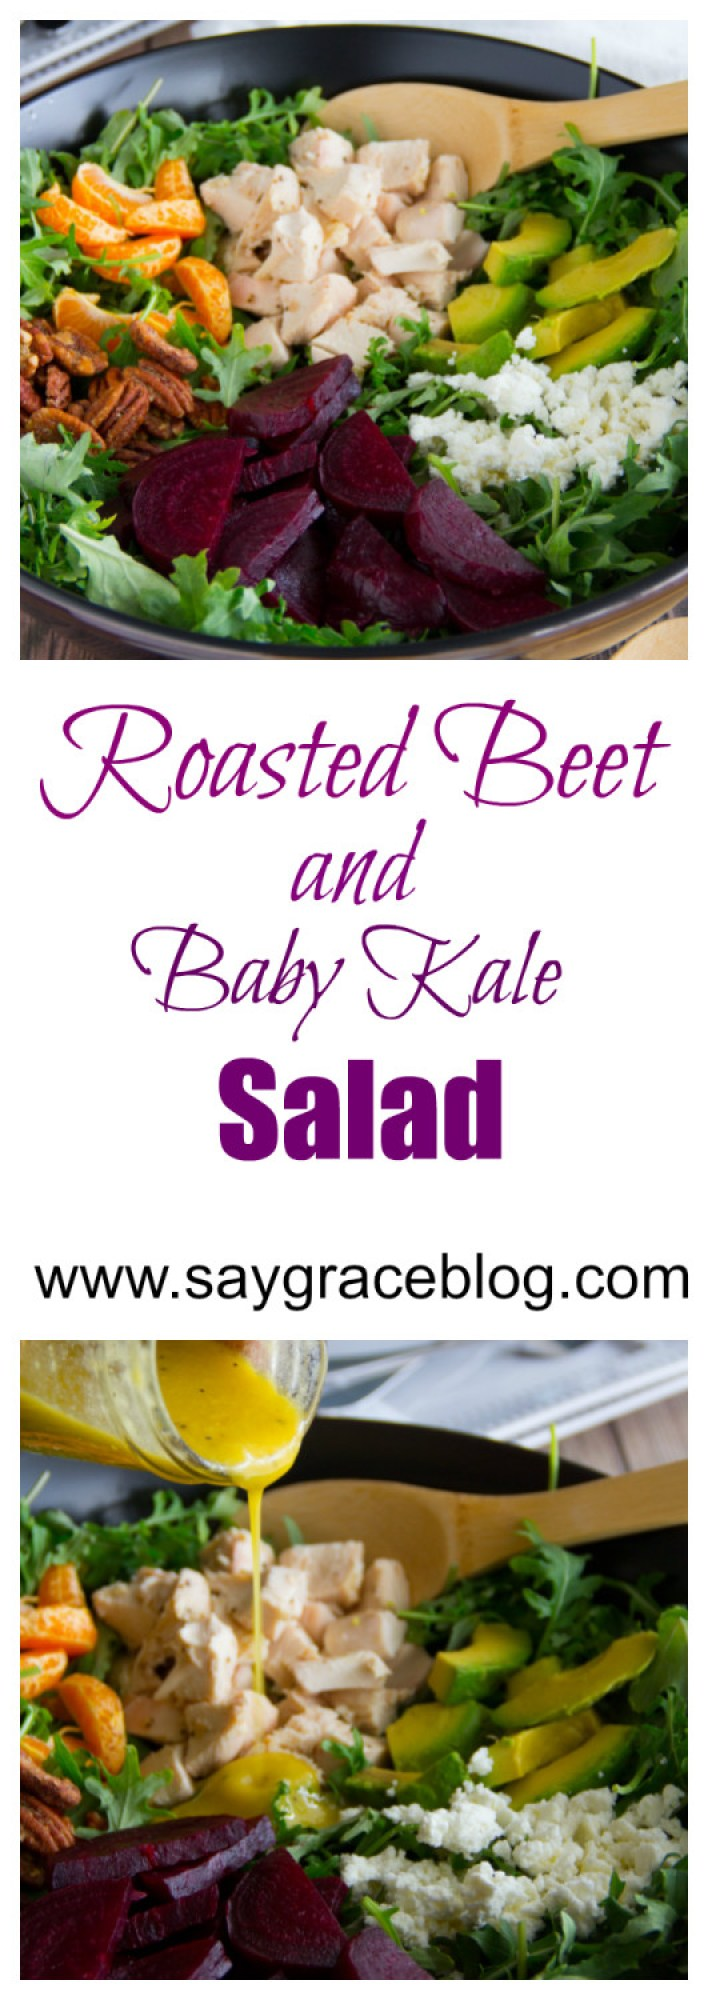 Roasted Beet & Baby Kale Salad